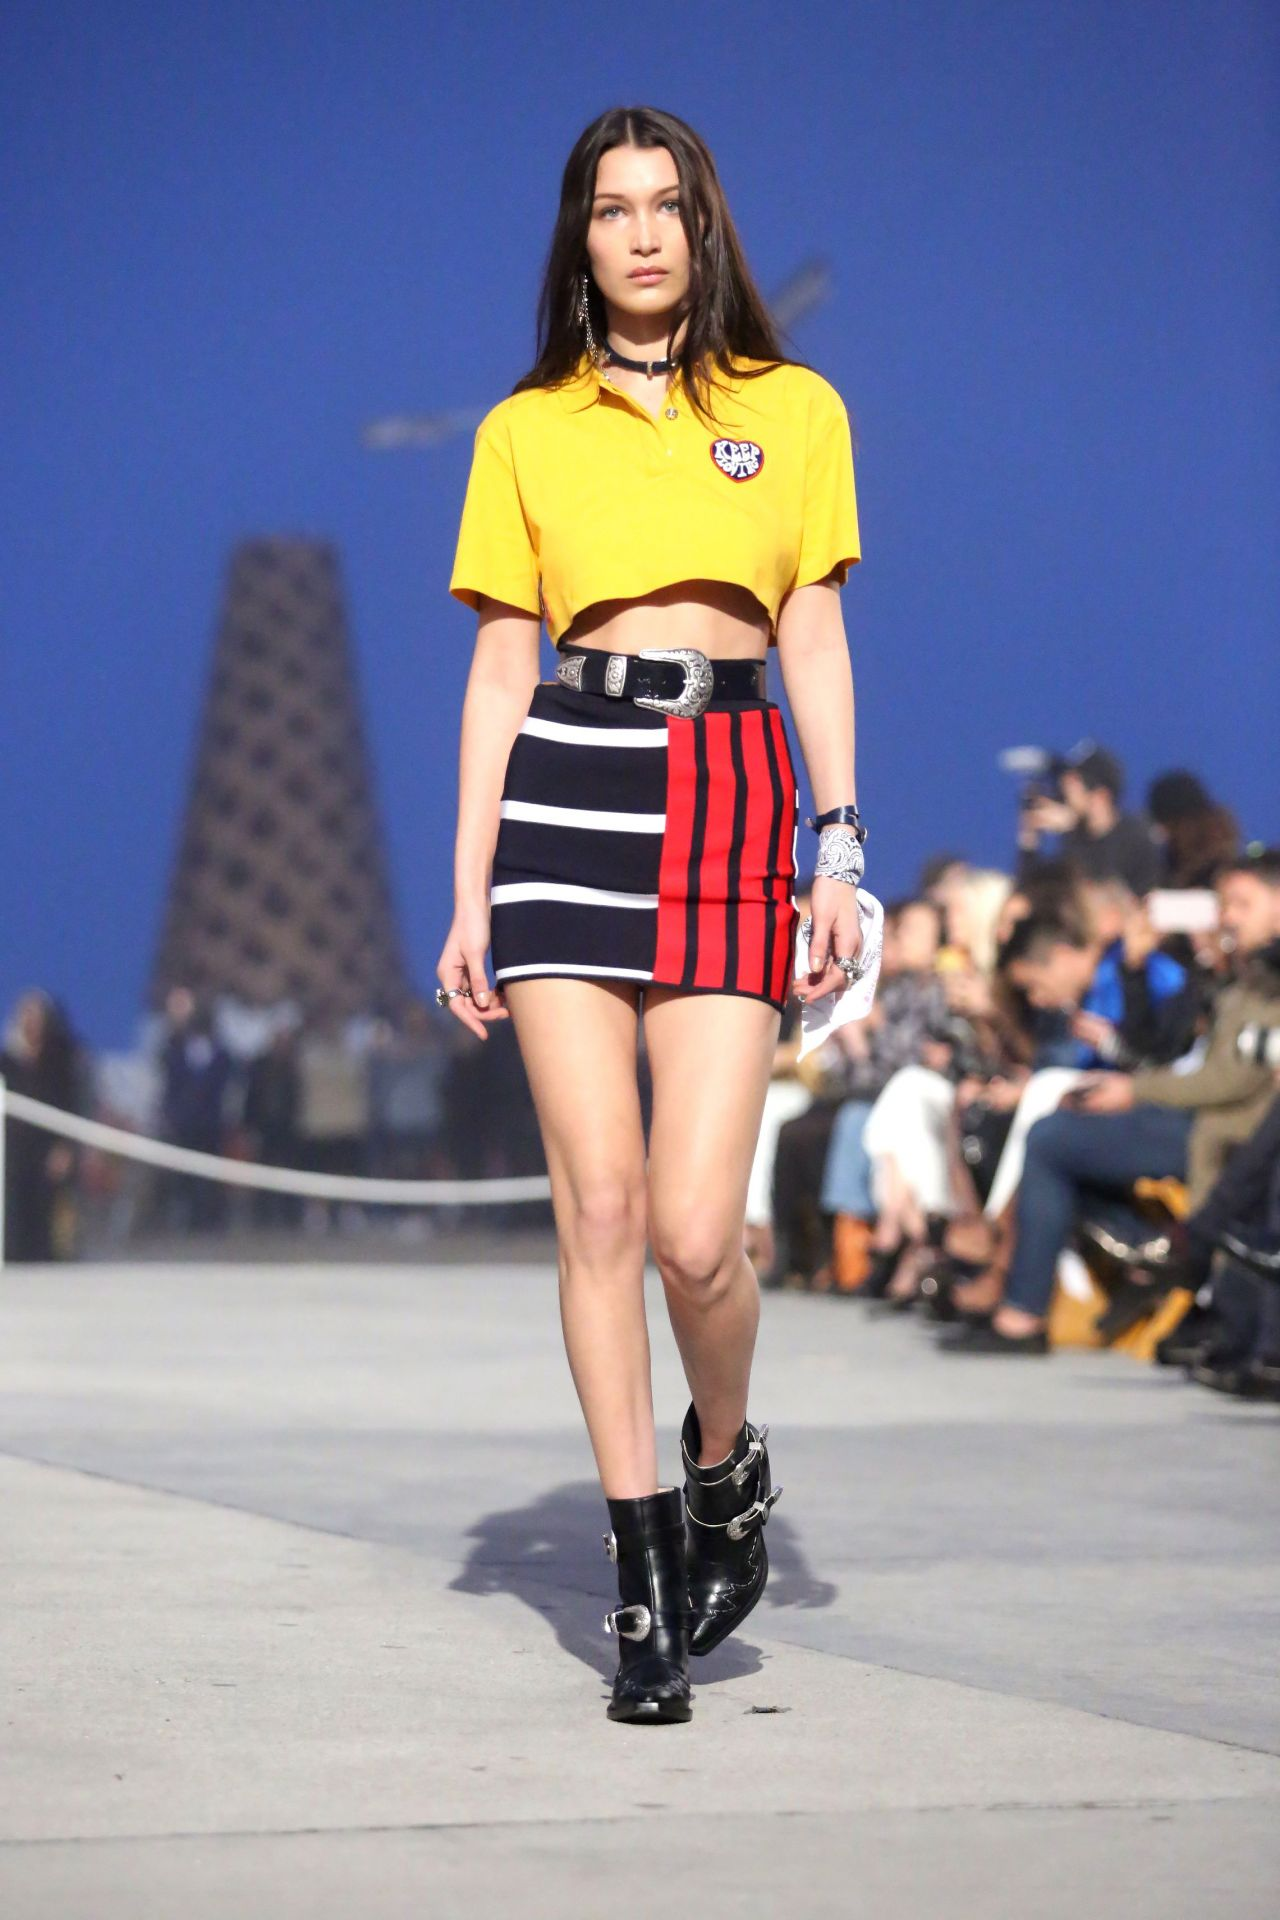 images Gigi hadid tommyland tommy hilfiger spring 2019 fashion show in venice ca 282019